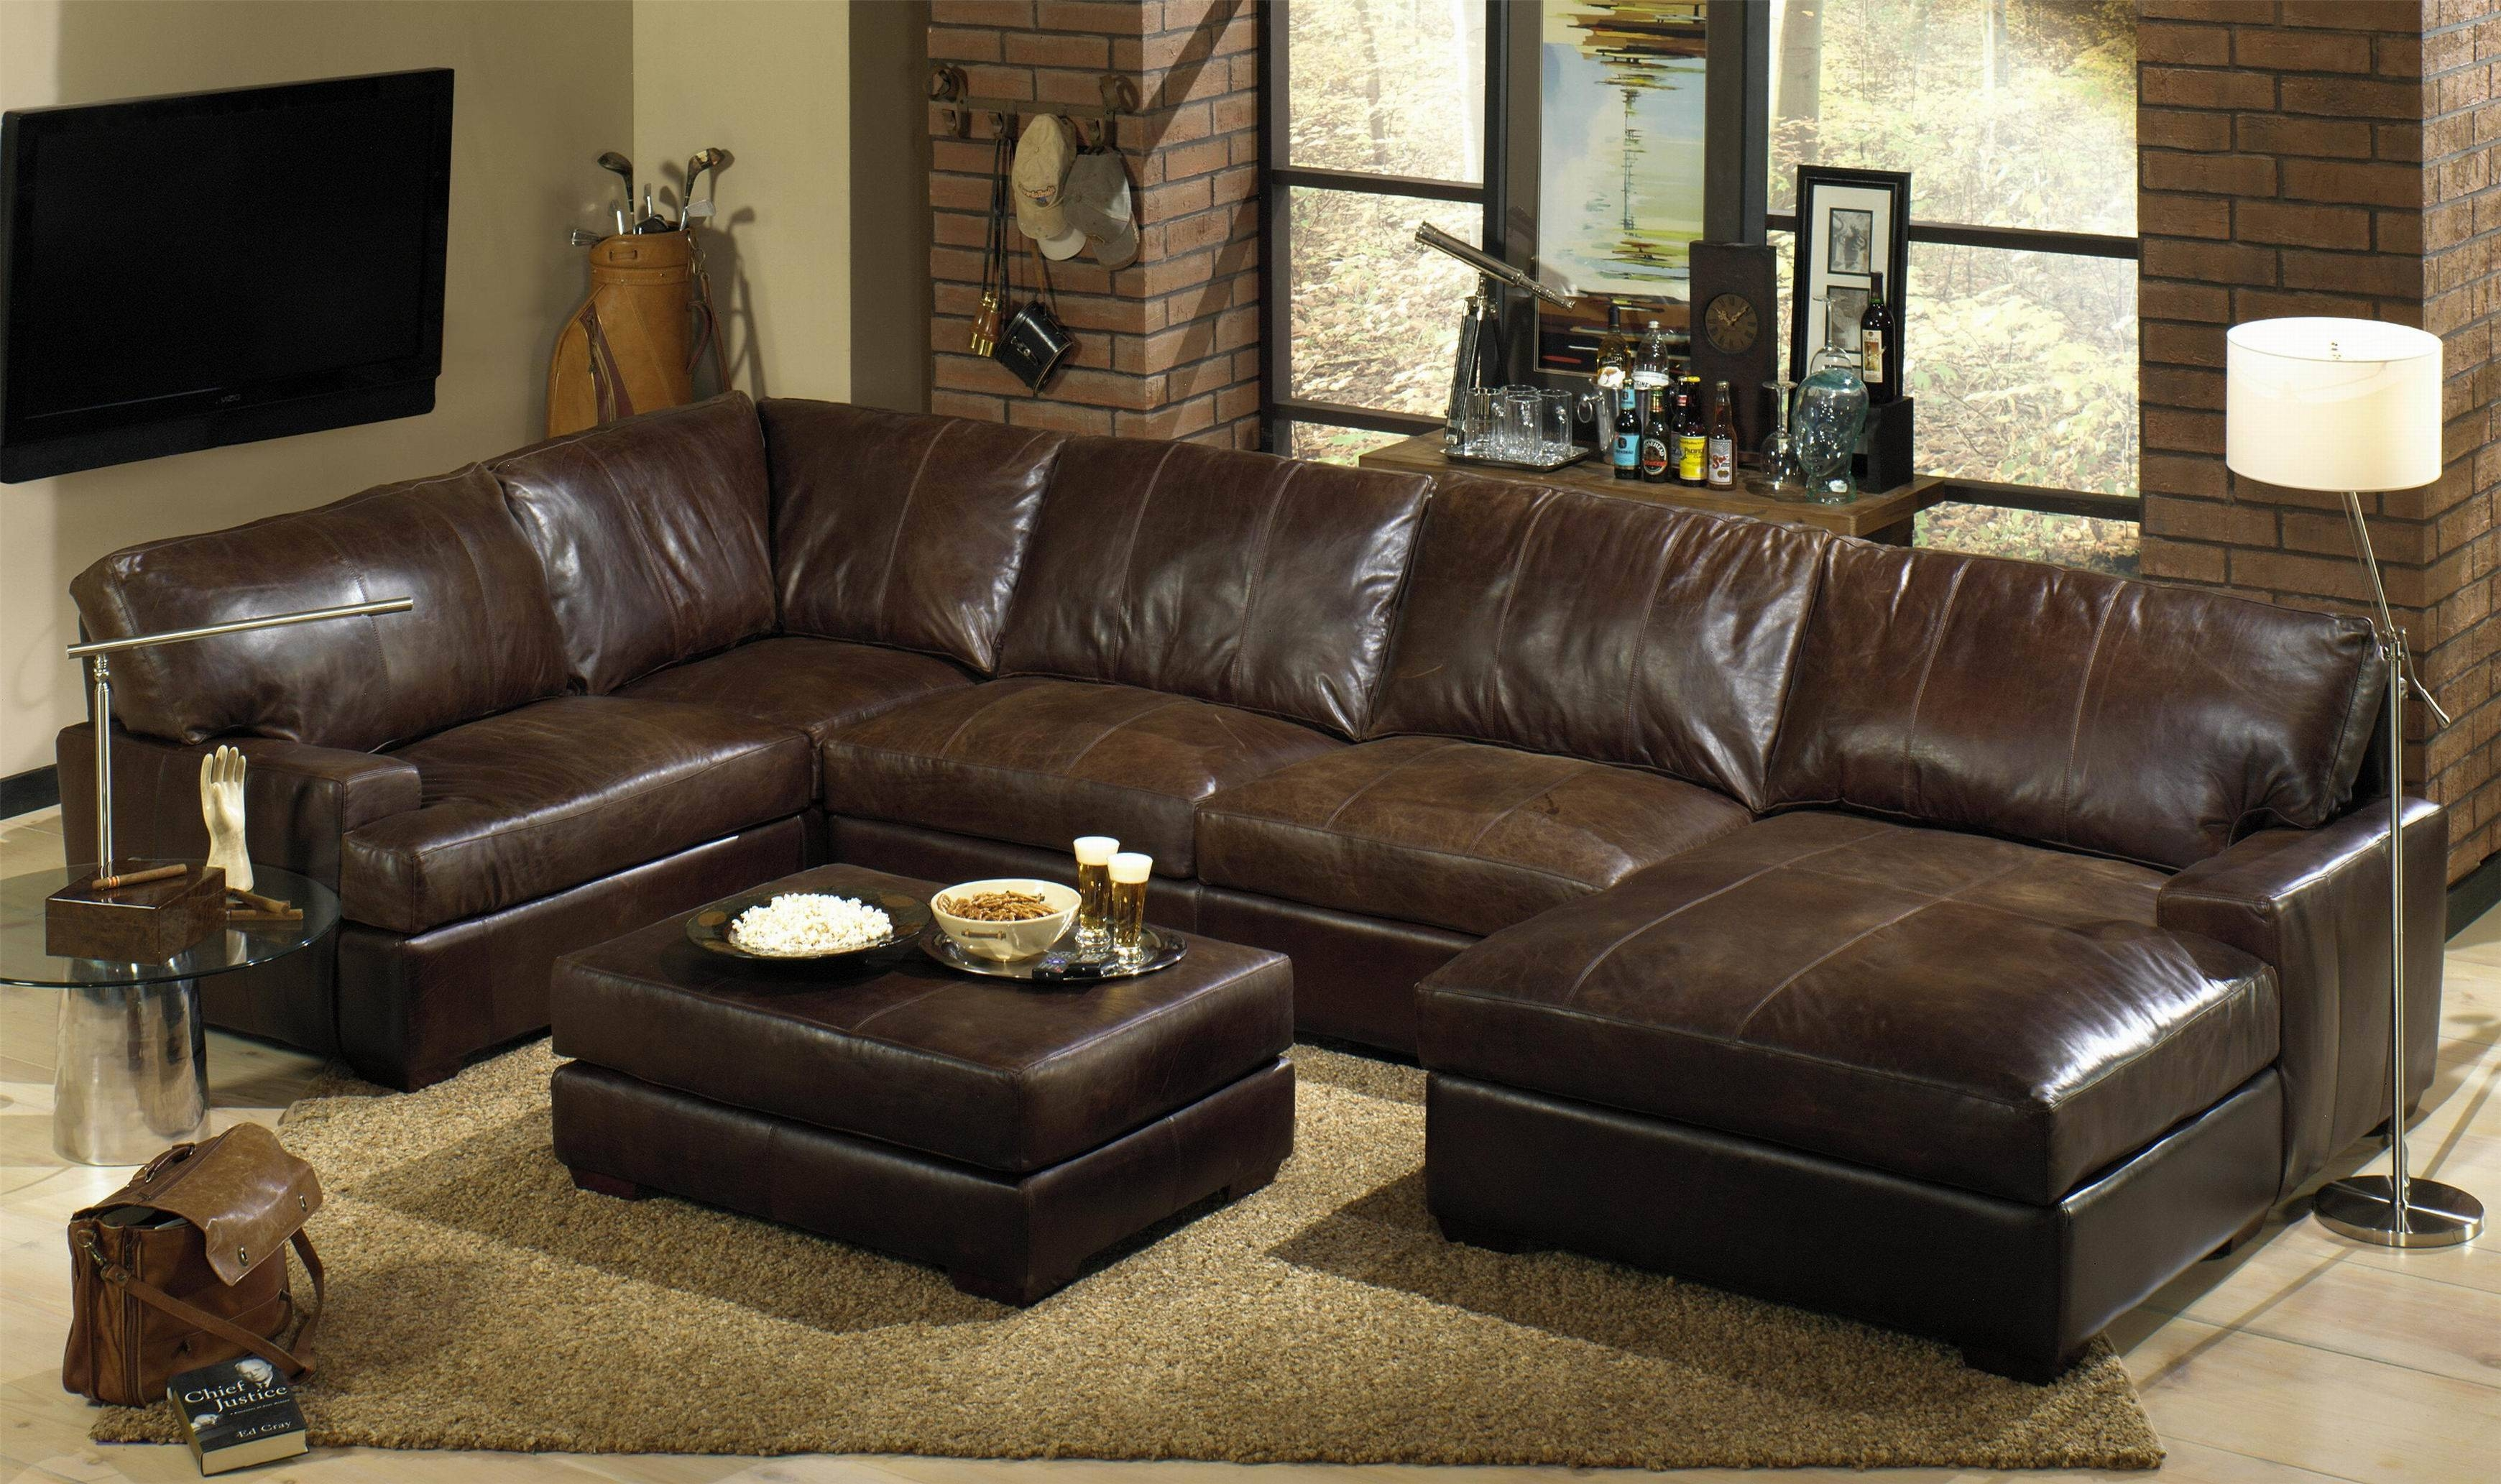 Furniture: Awesome Design Distressed Leather Sectional For with regard to Leather Sofa Sectionals for Sale (Image 4 of 30)